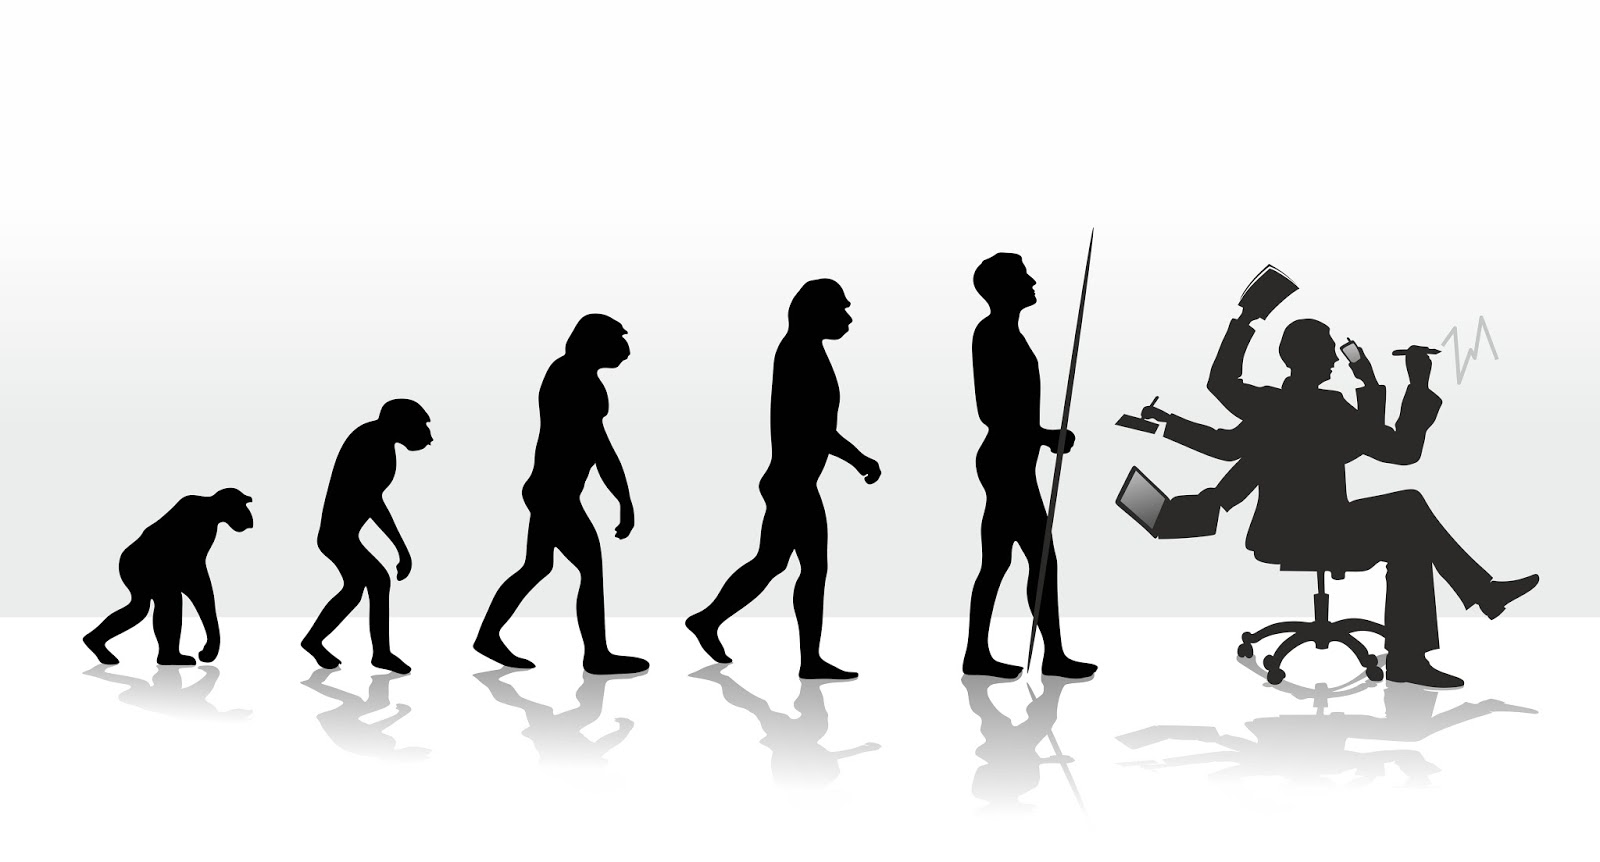 the human devolution the humourless journey of a hilarious the human devolution the humourless journey of a hilarious species from beast to resource to capital to being part 1